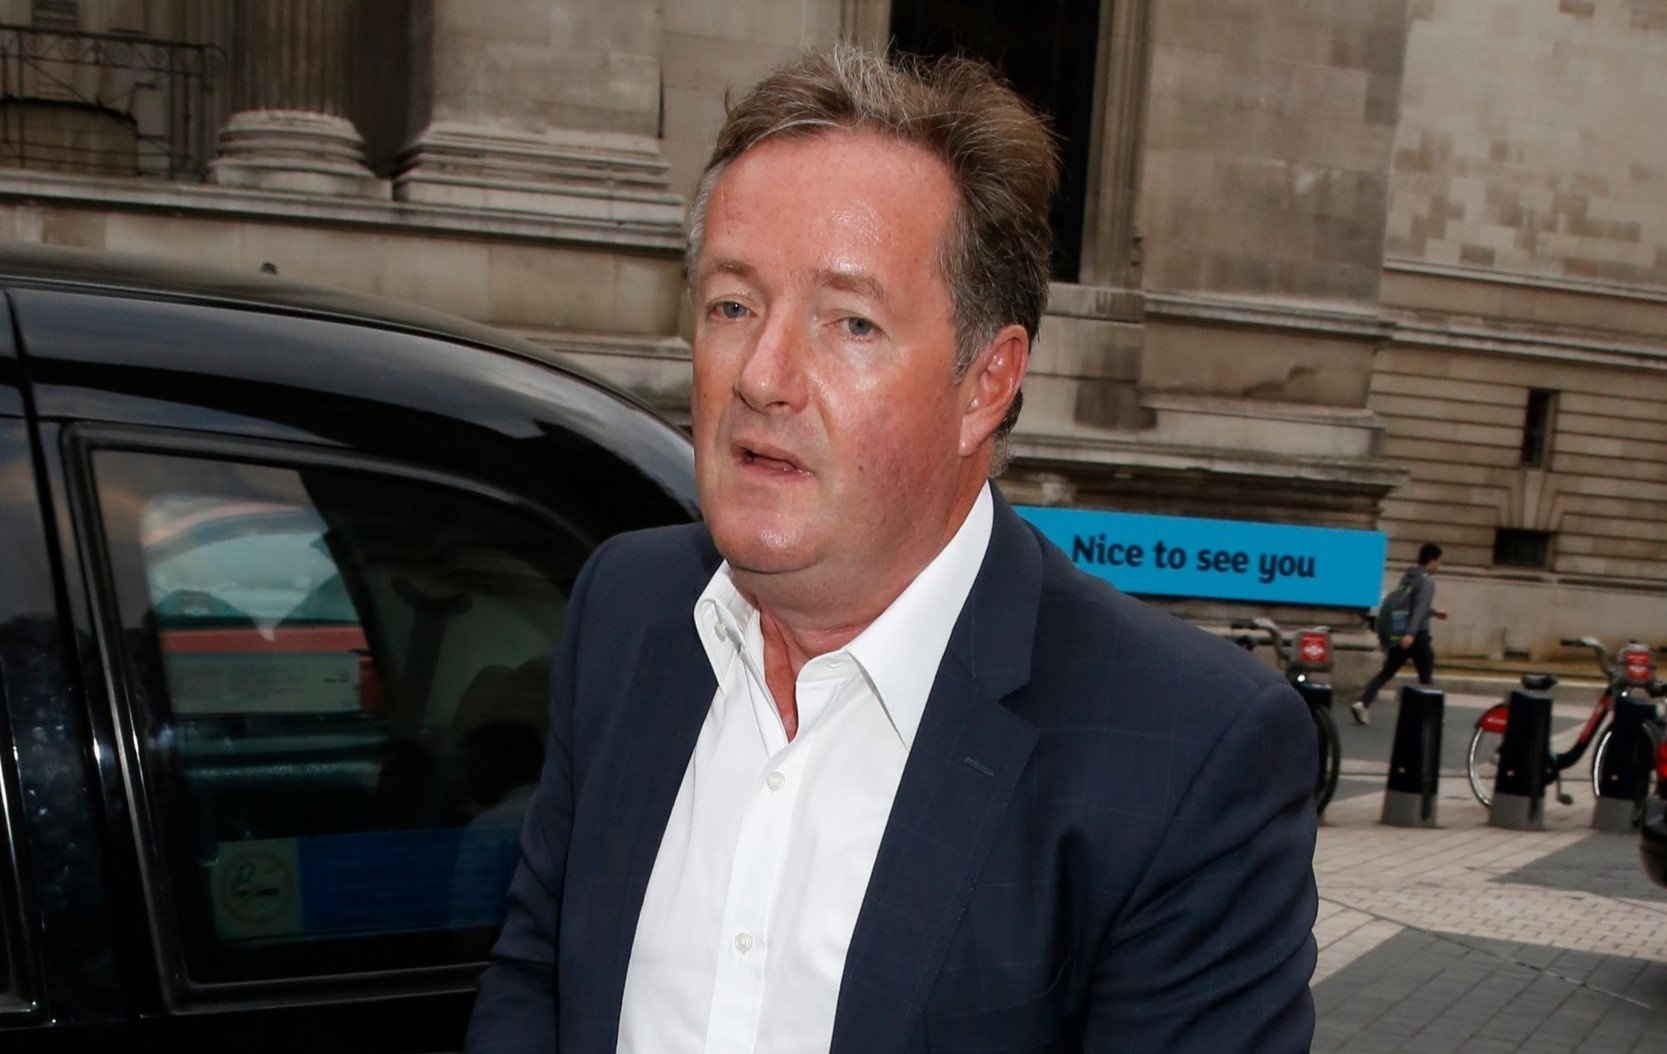 Piers Morgan Defends His Parenting Skills During Twitter